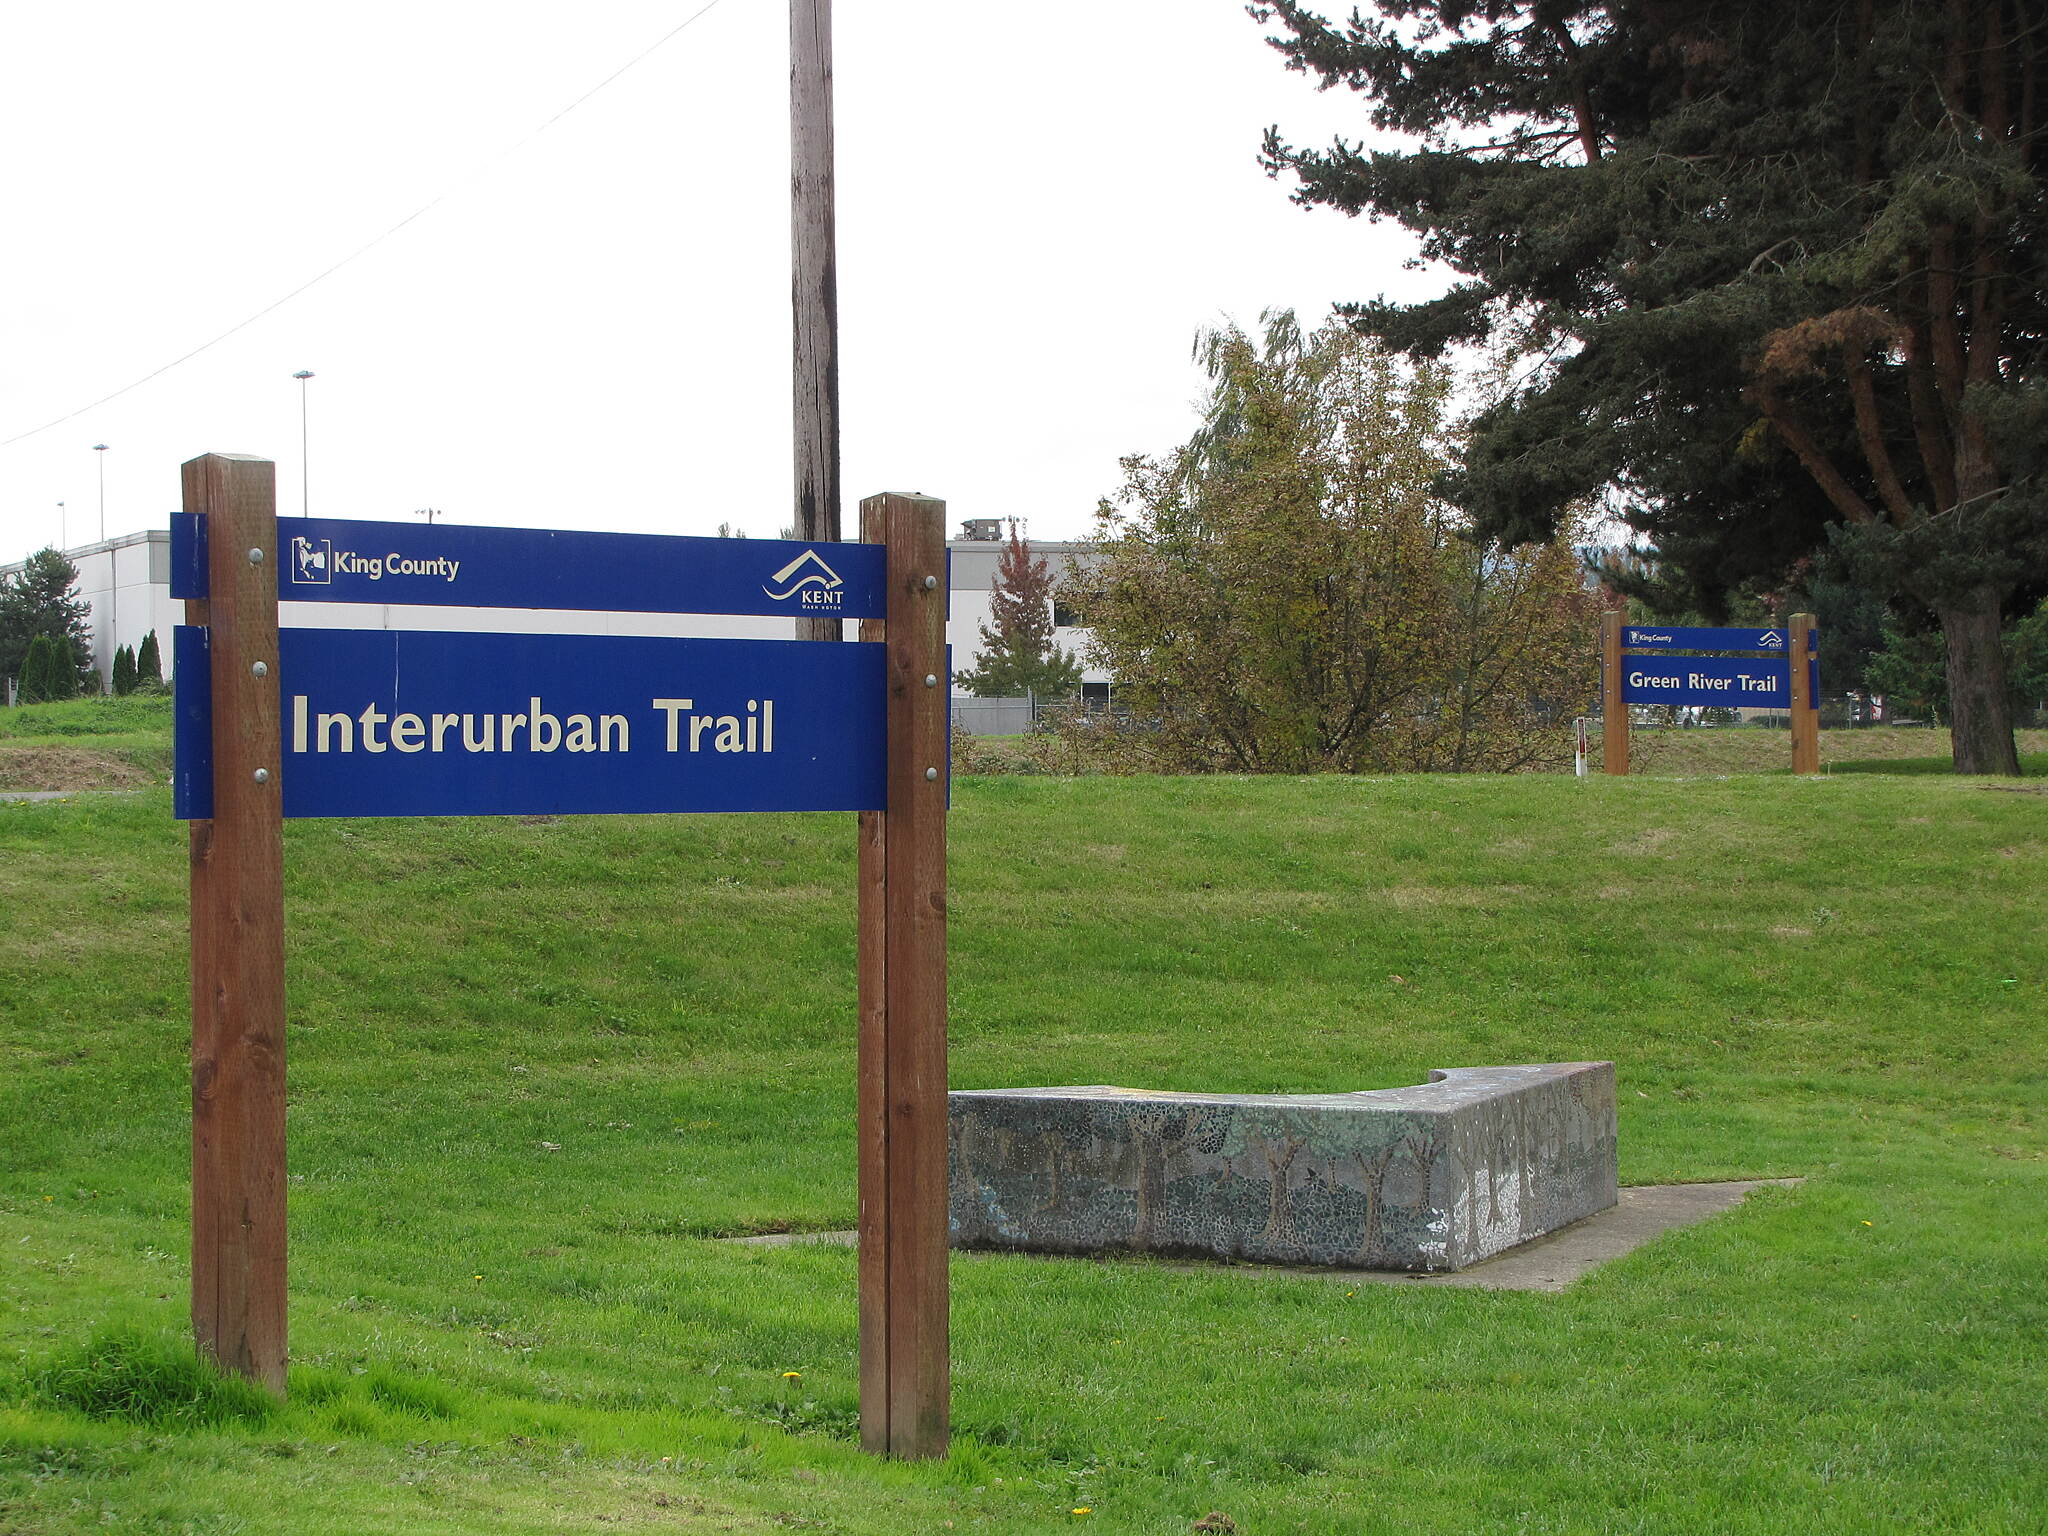 Interurban Trail (South) Interurban Trail (South) Here the Interurban connects with the Green River Trail in Kent.